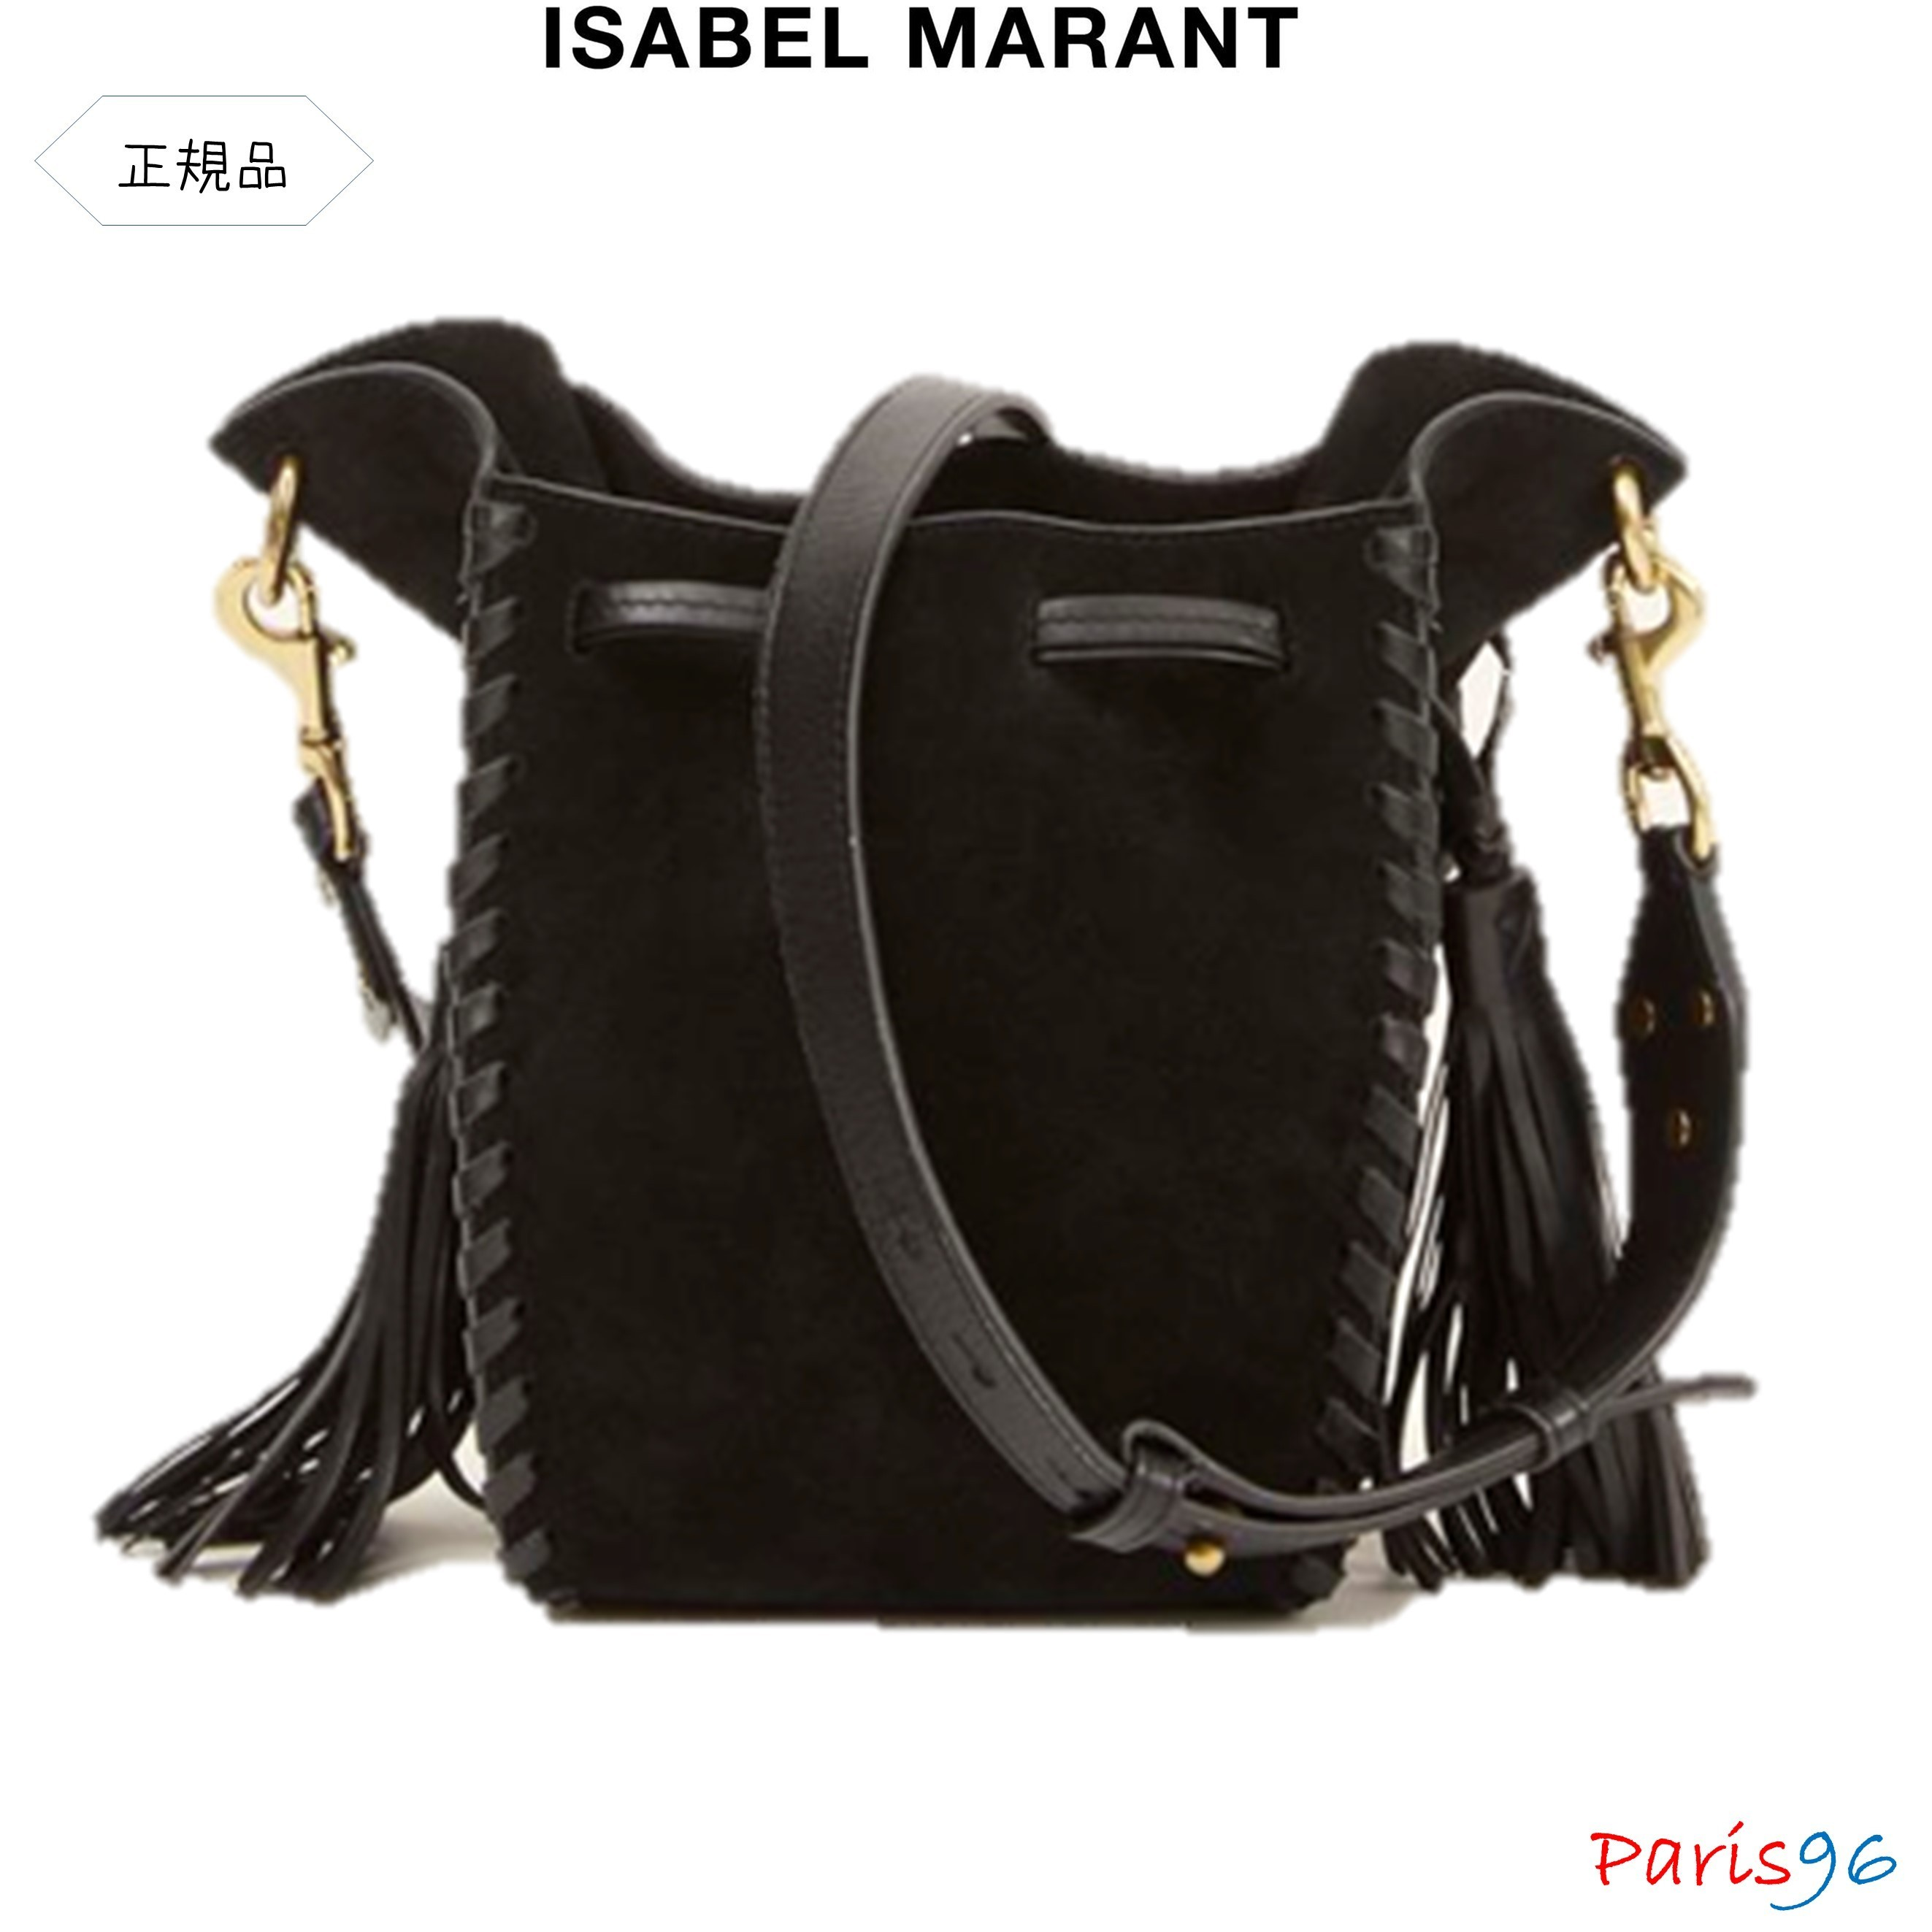 shop isabel marant radja